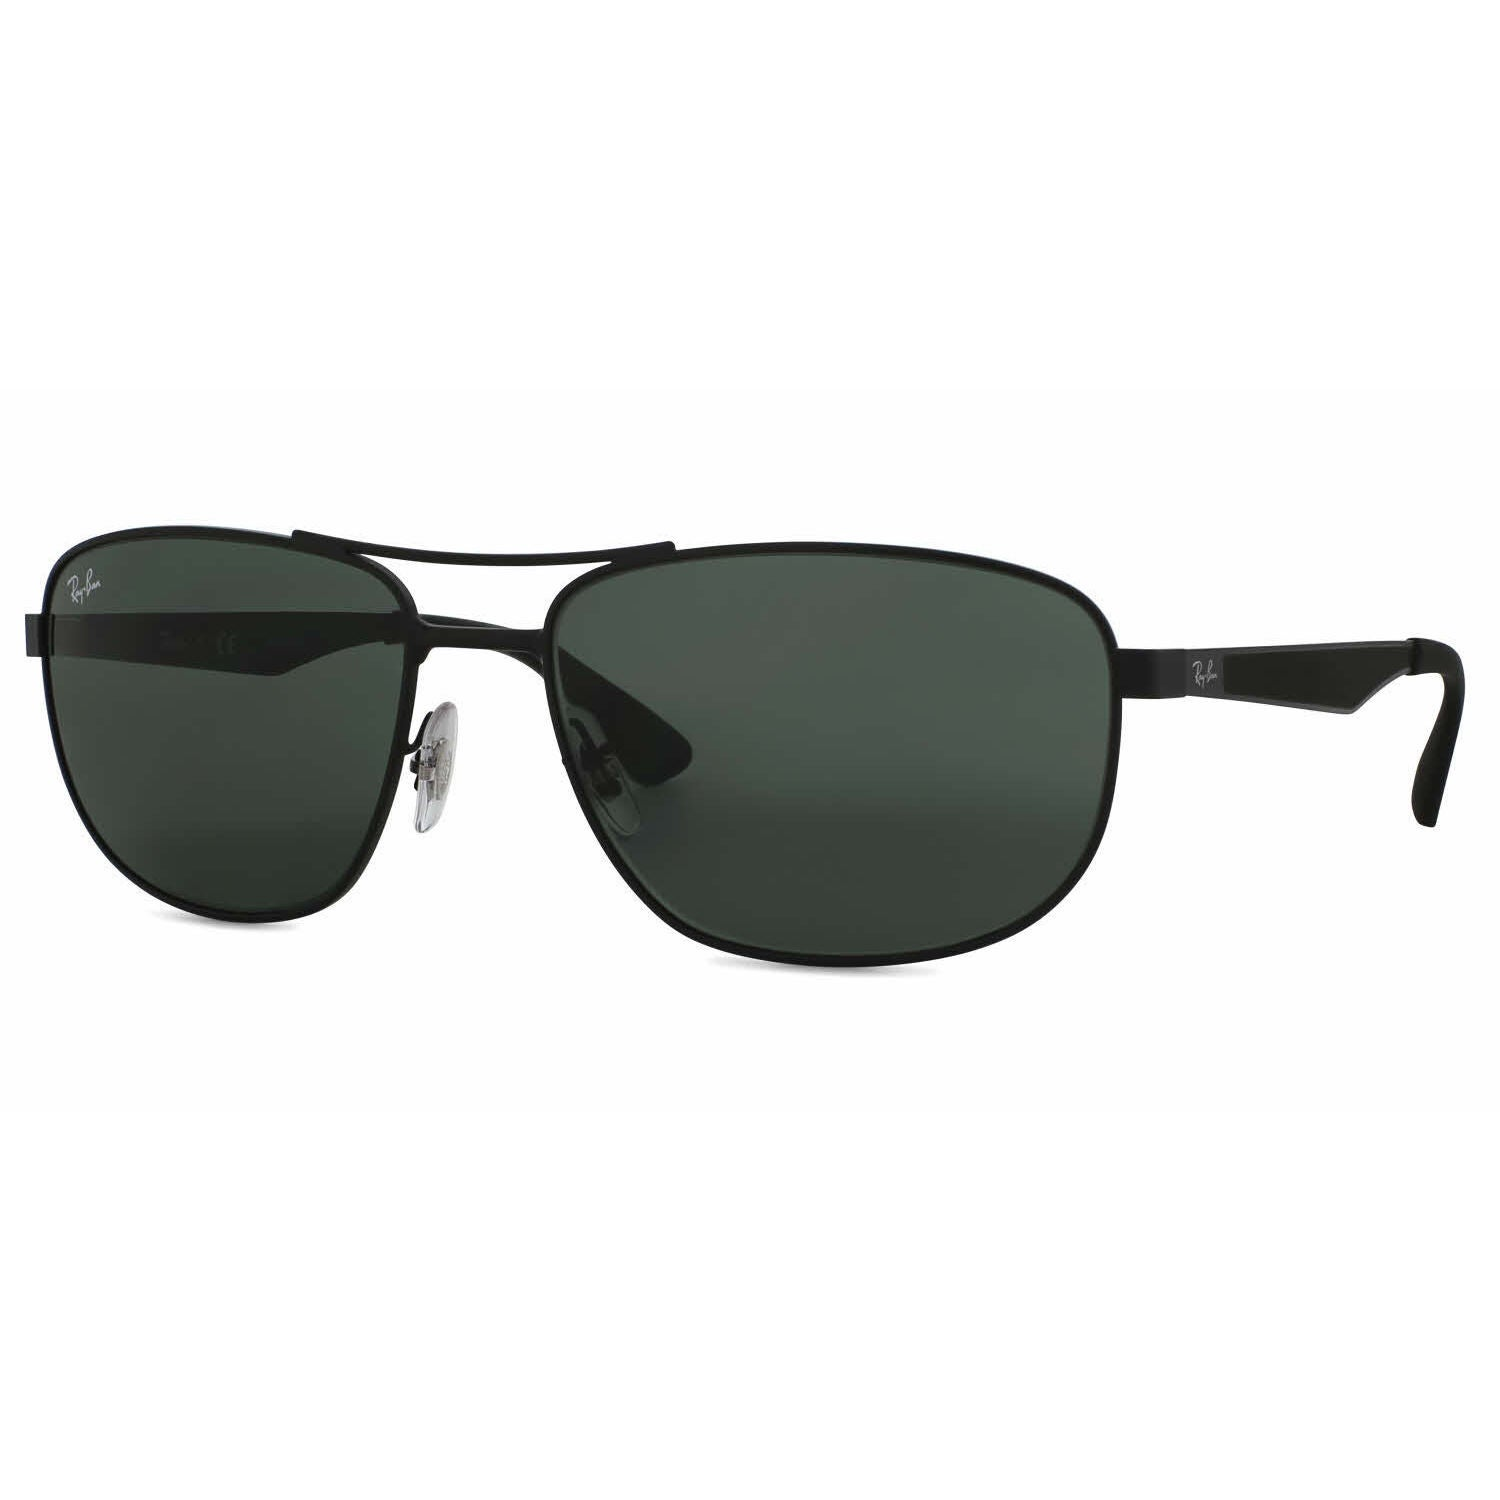 be10367871e ... inexpensive shop ray ban rb3528 006 71 black frame green classic 61mm  lens sunglasses on sale